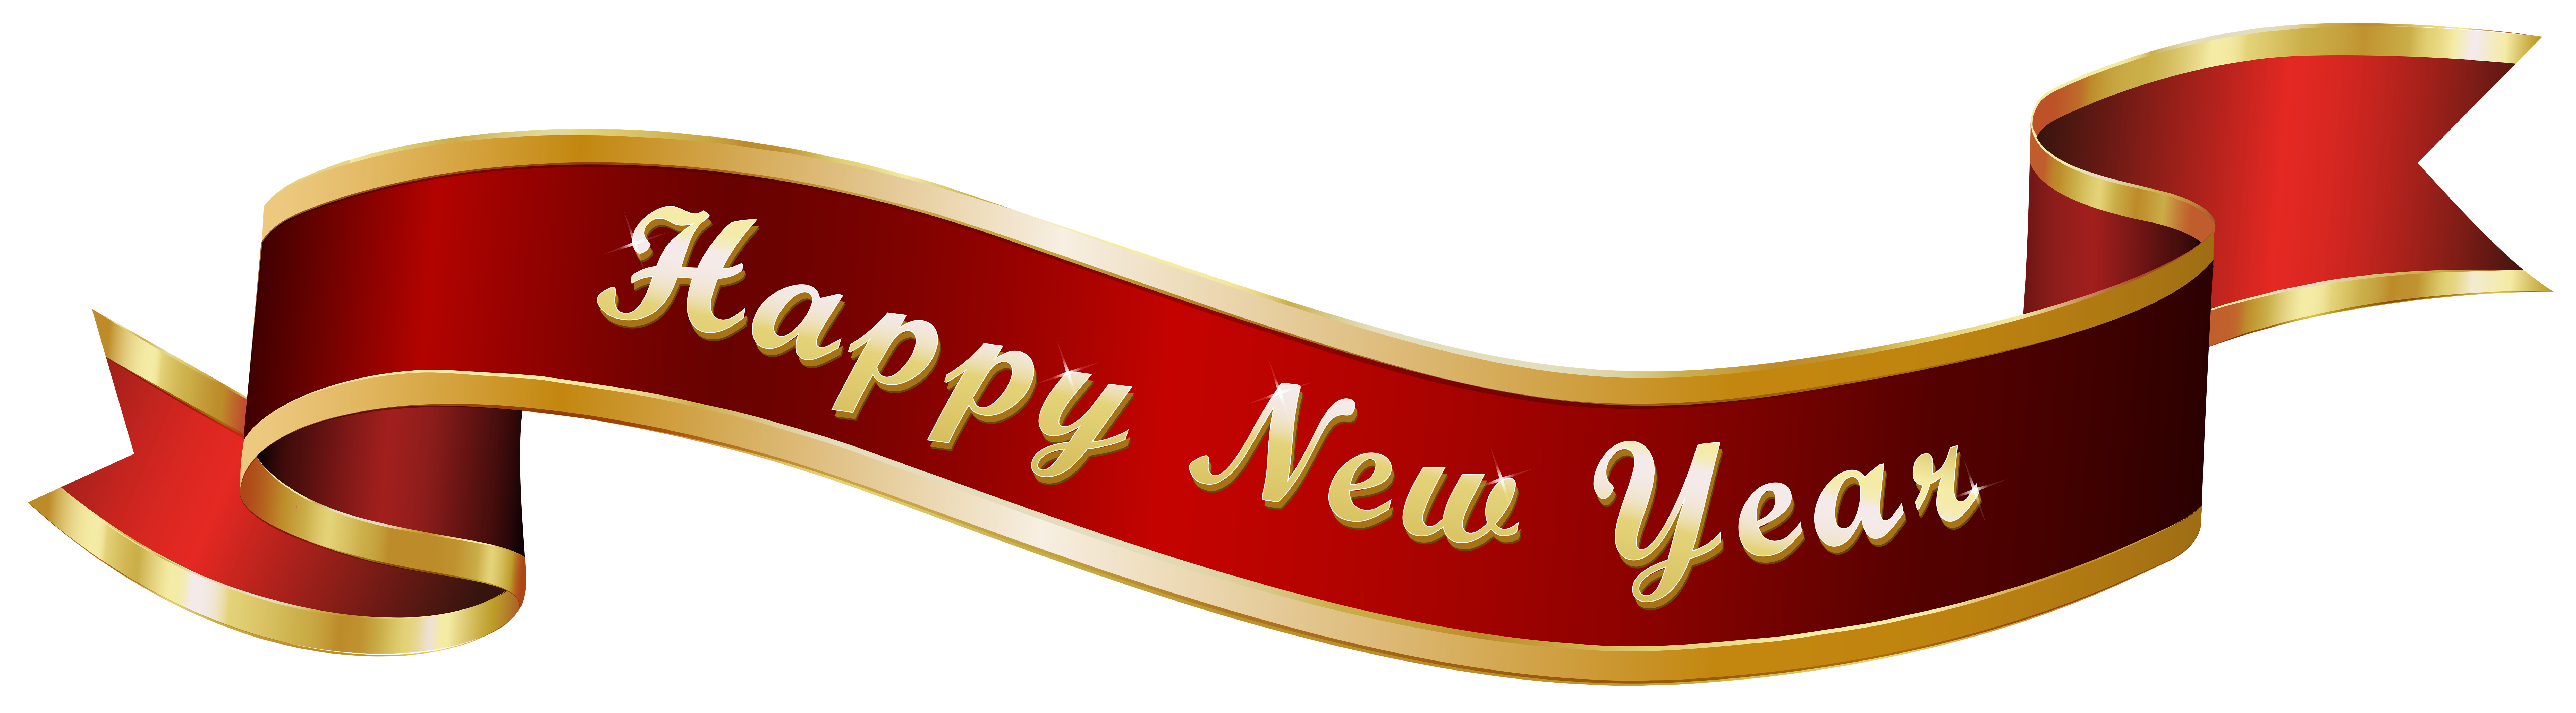 2017 clipart banner. Happy new year clip